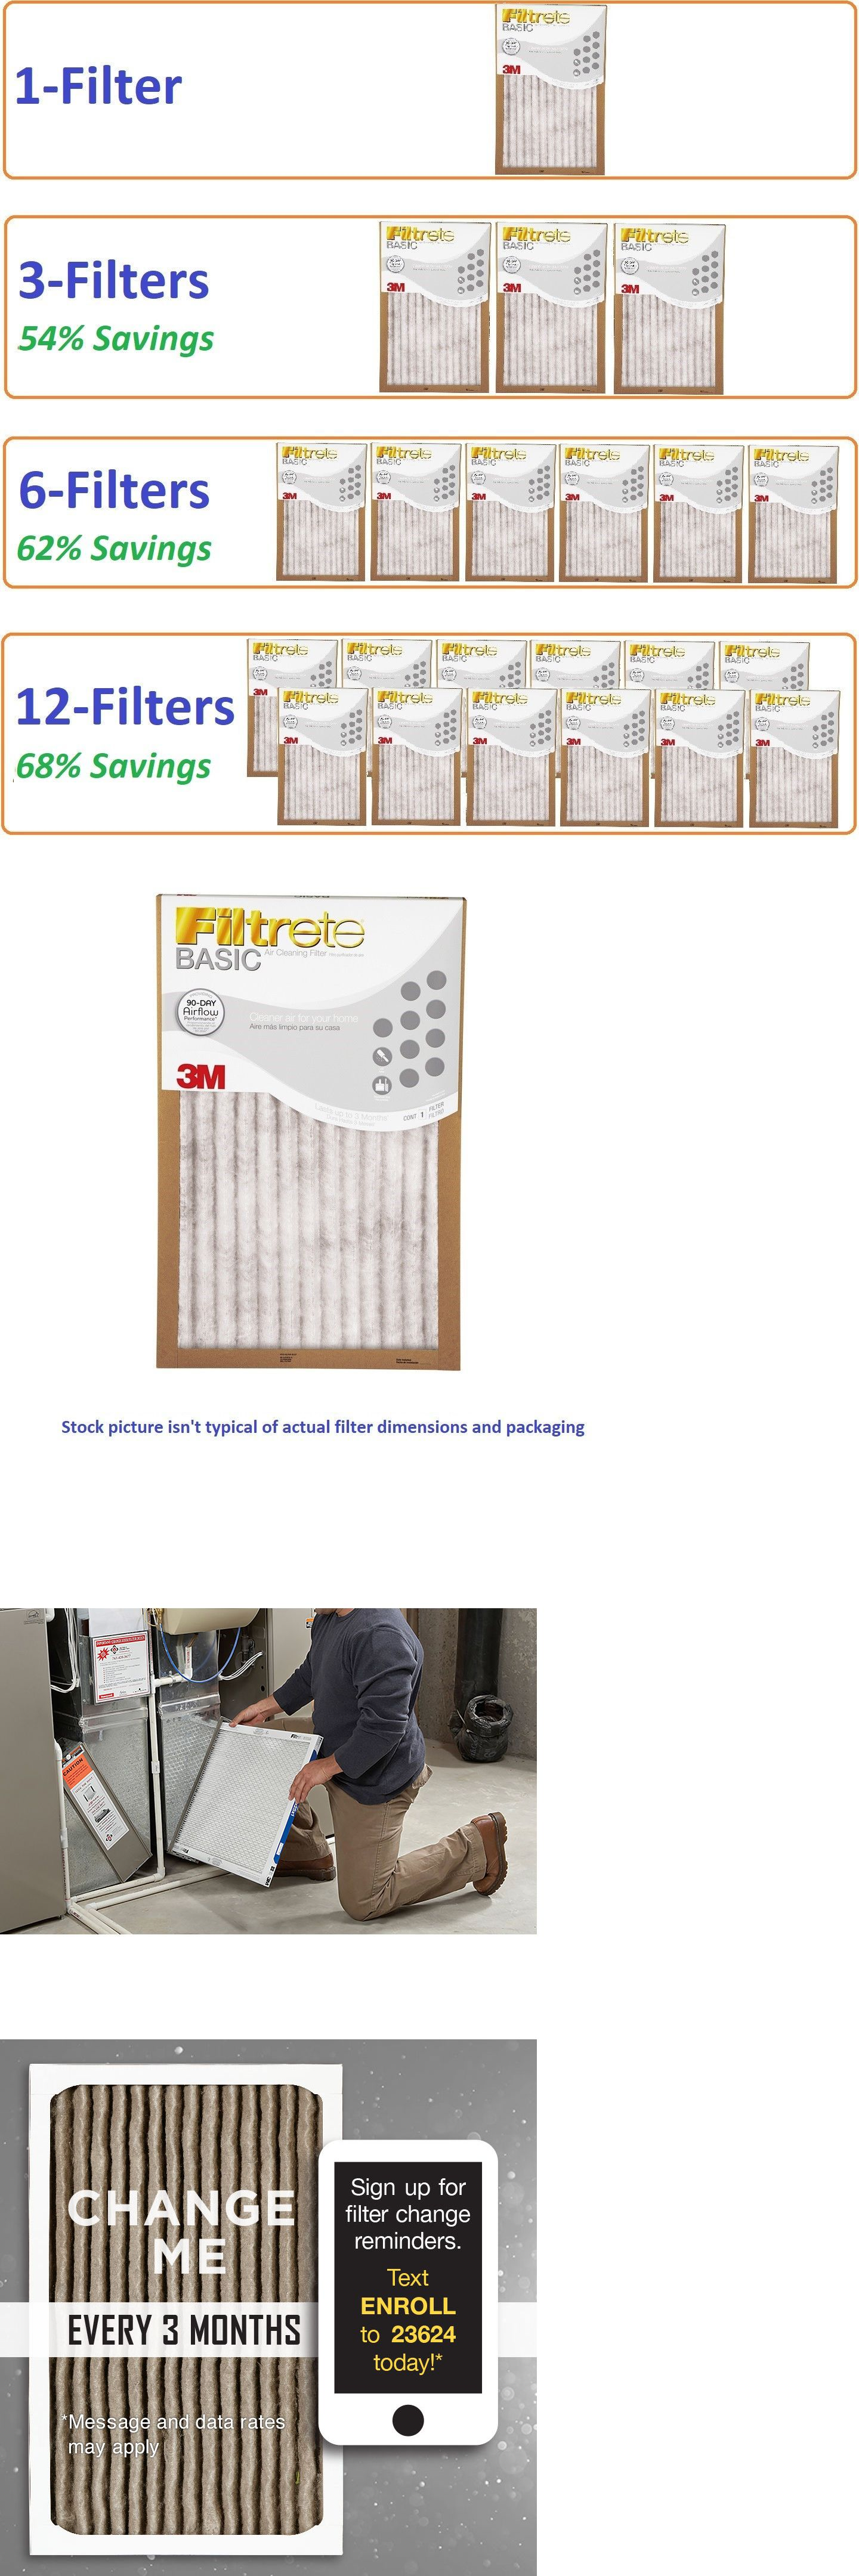 Details about Filtrete AirFilter Basic Pleated Furnace